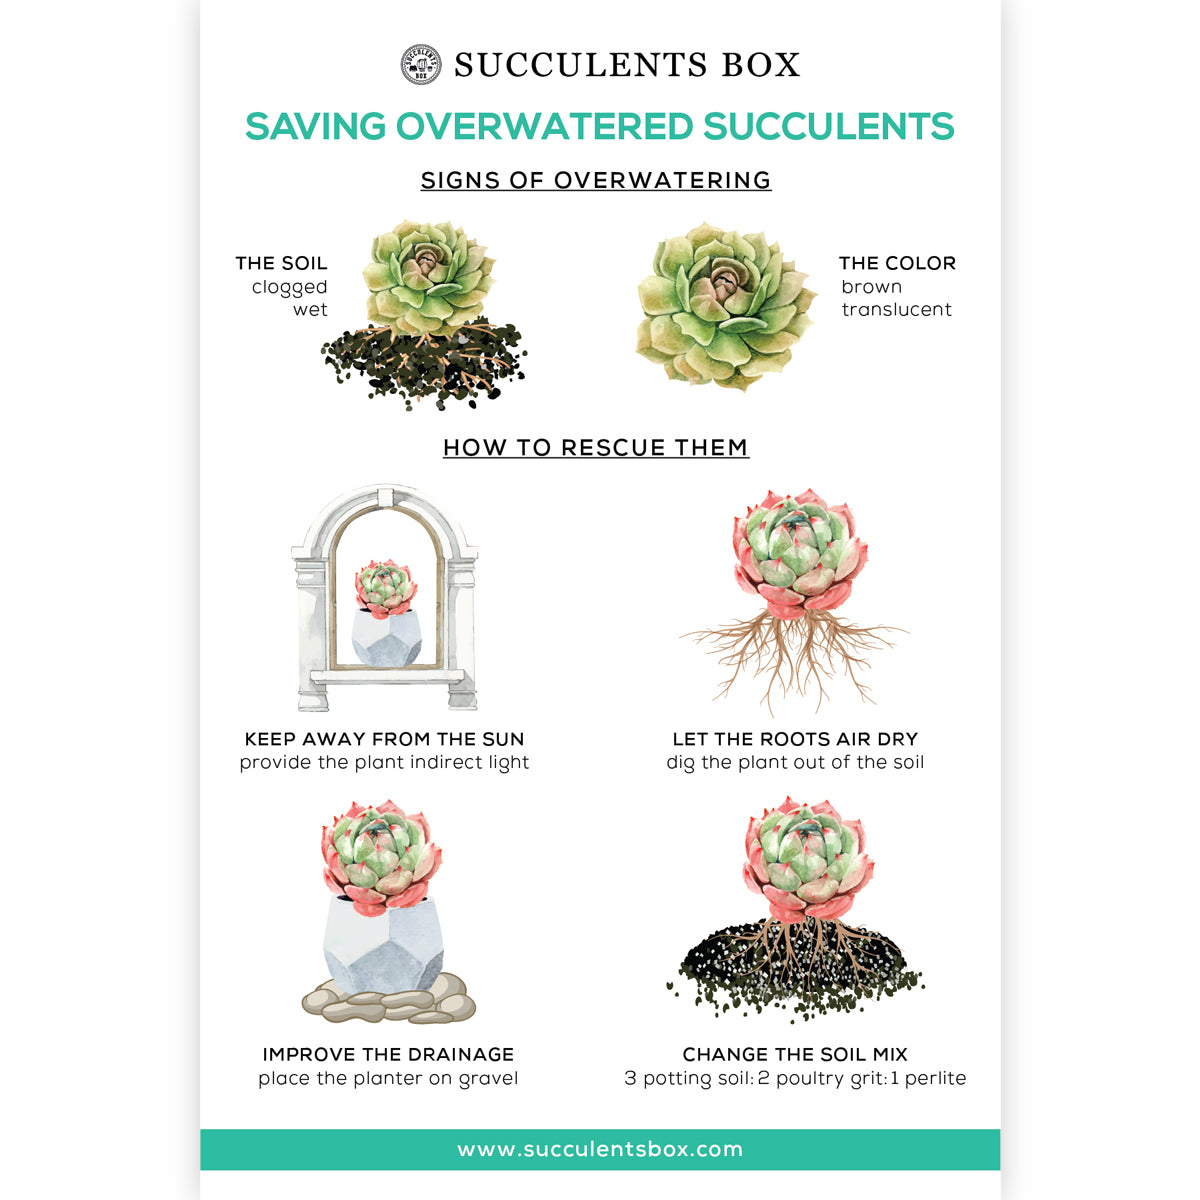 Saving Overwatered Succulents Card for sale, Succulent Care Card for sale, Succulent Gift Ideas